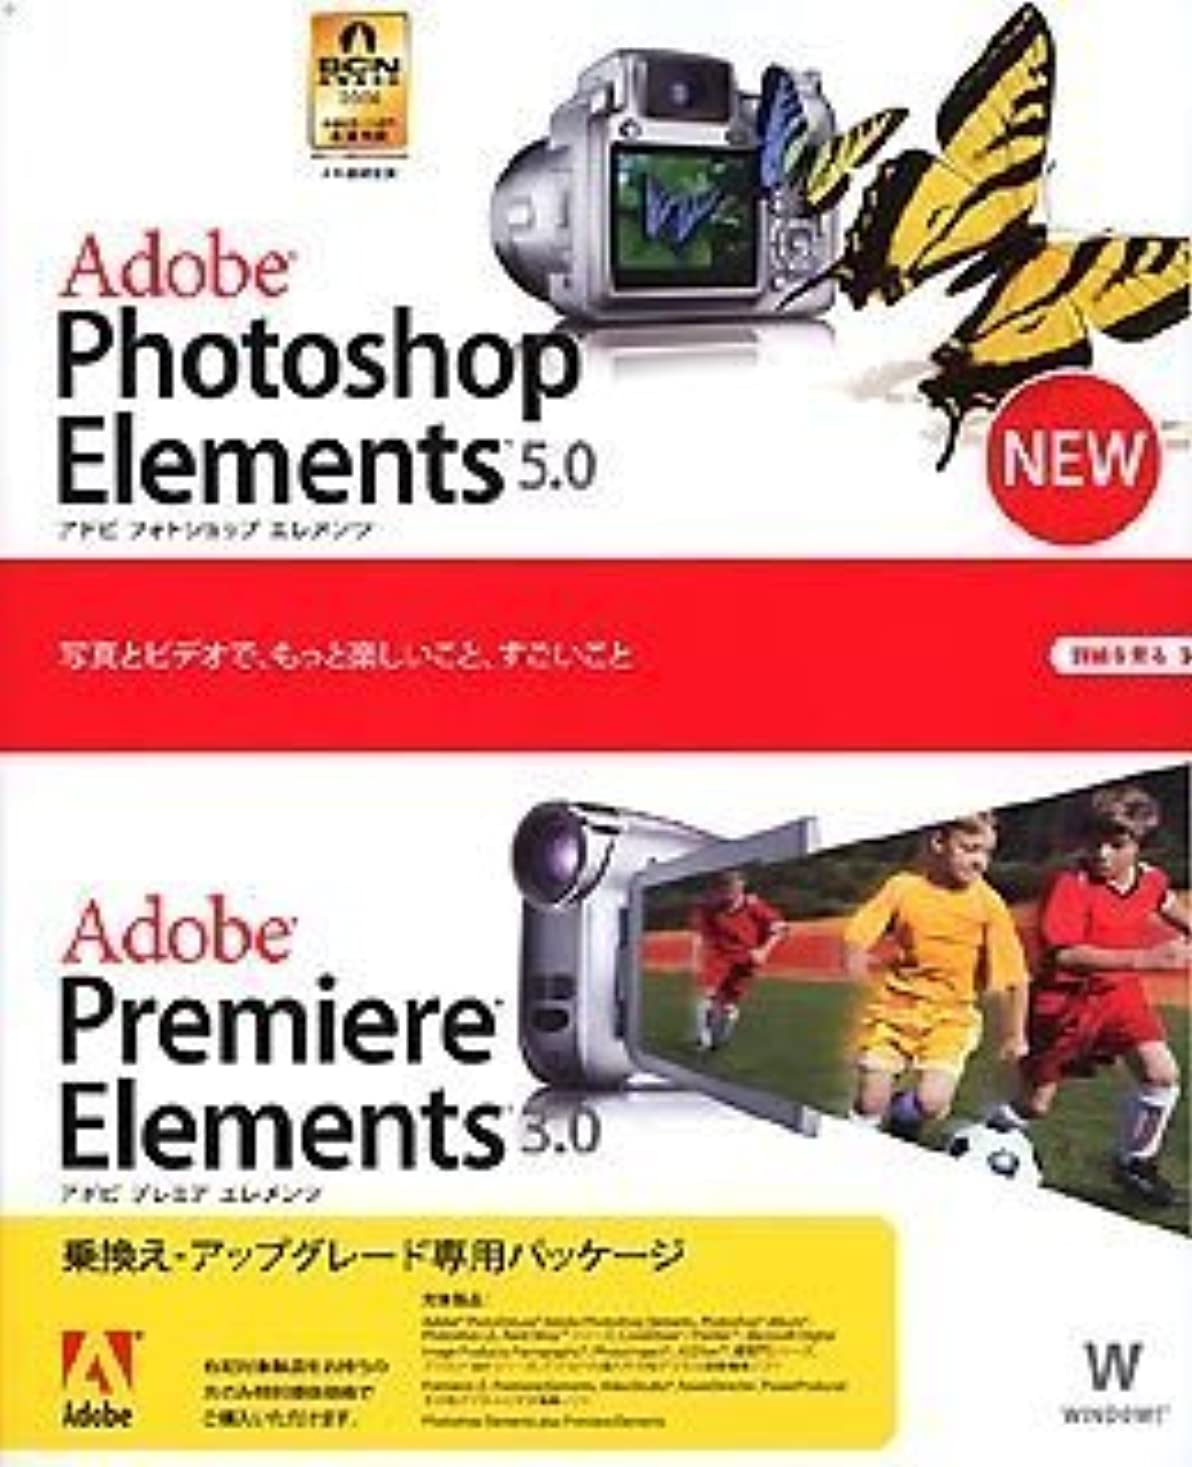 意味する恐れ空虚Adobe Photoshop Elements 5.0 plus Adobe Premiere Elements 3.0 日本語版 Windows版 アップグレード版